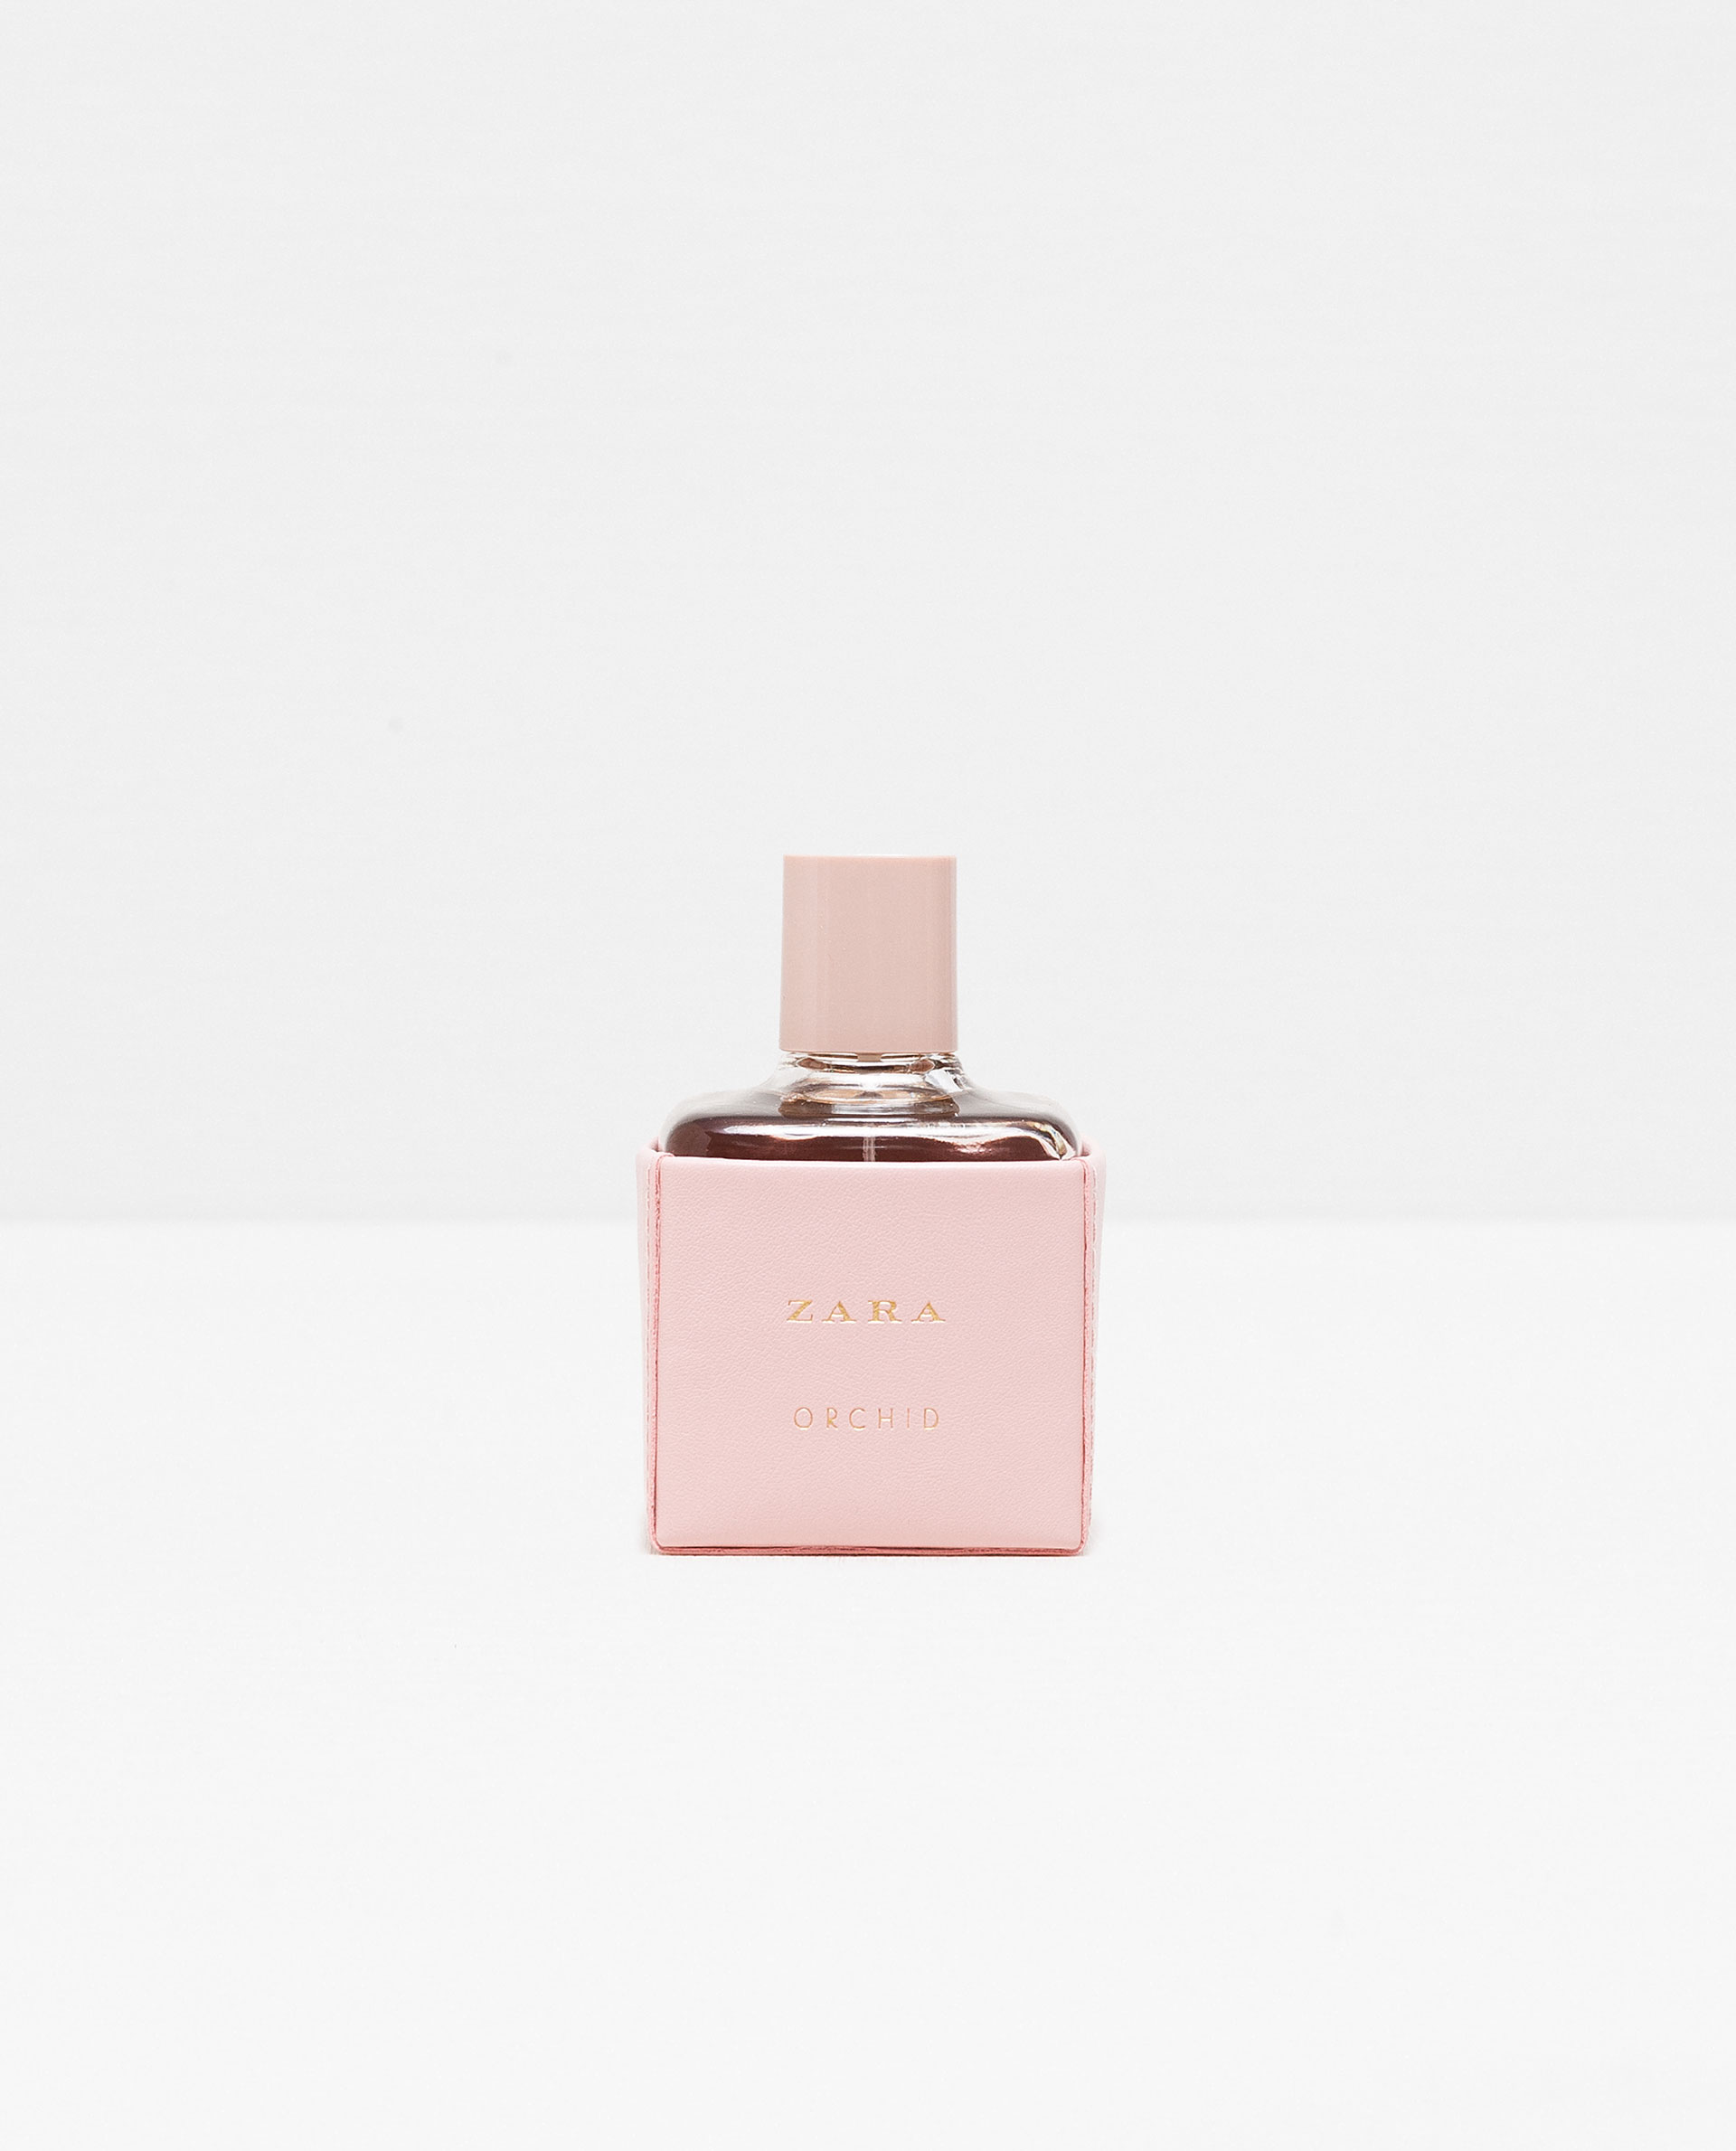 Perfume (UK: / ˈ p ɜːr f j uː m /, US: / p ər ˈ f j uː m /; French: parfum) is a mixture of fragrant essential oils or aroma compounds, fixatives and solvents, used to give the human body, animals, food, objects, and living-spaces an agreeable scent. It is usually in liquid form and used to give a .